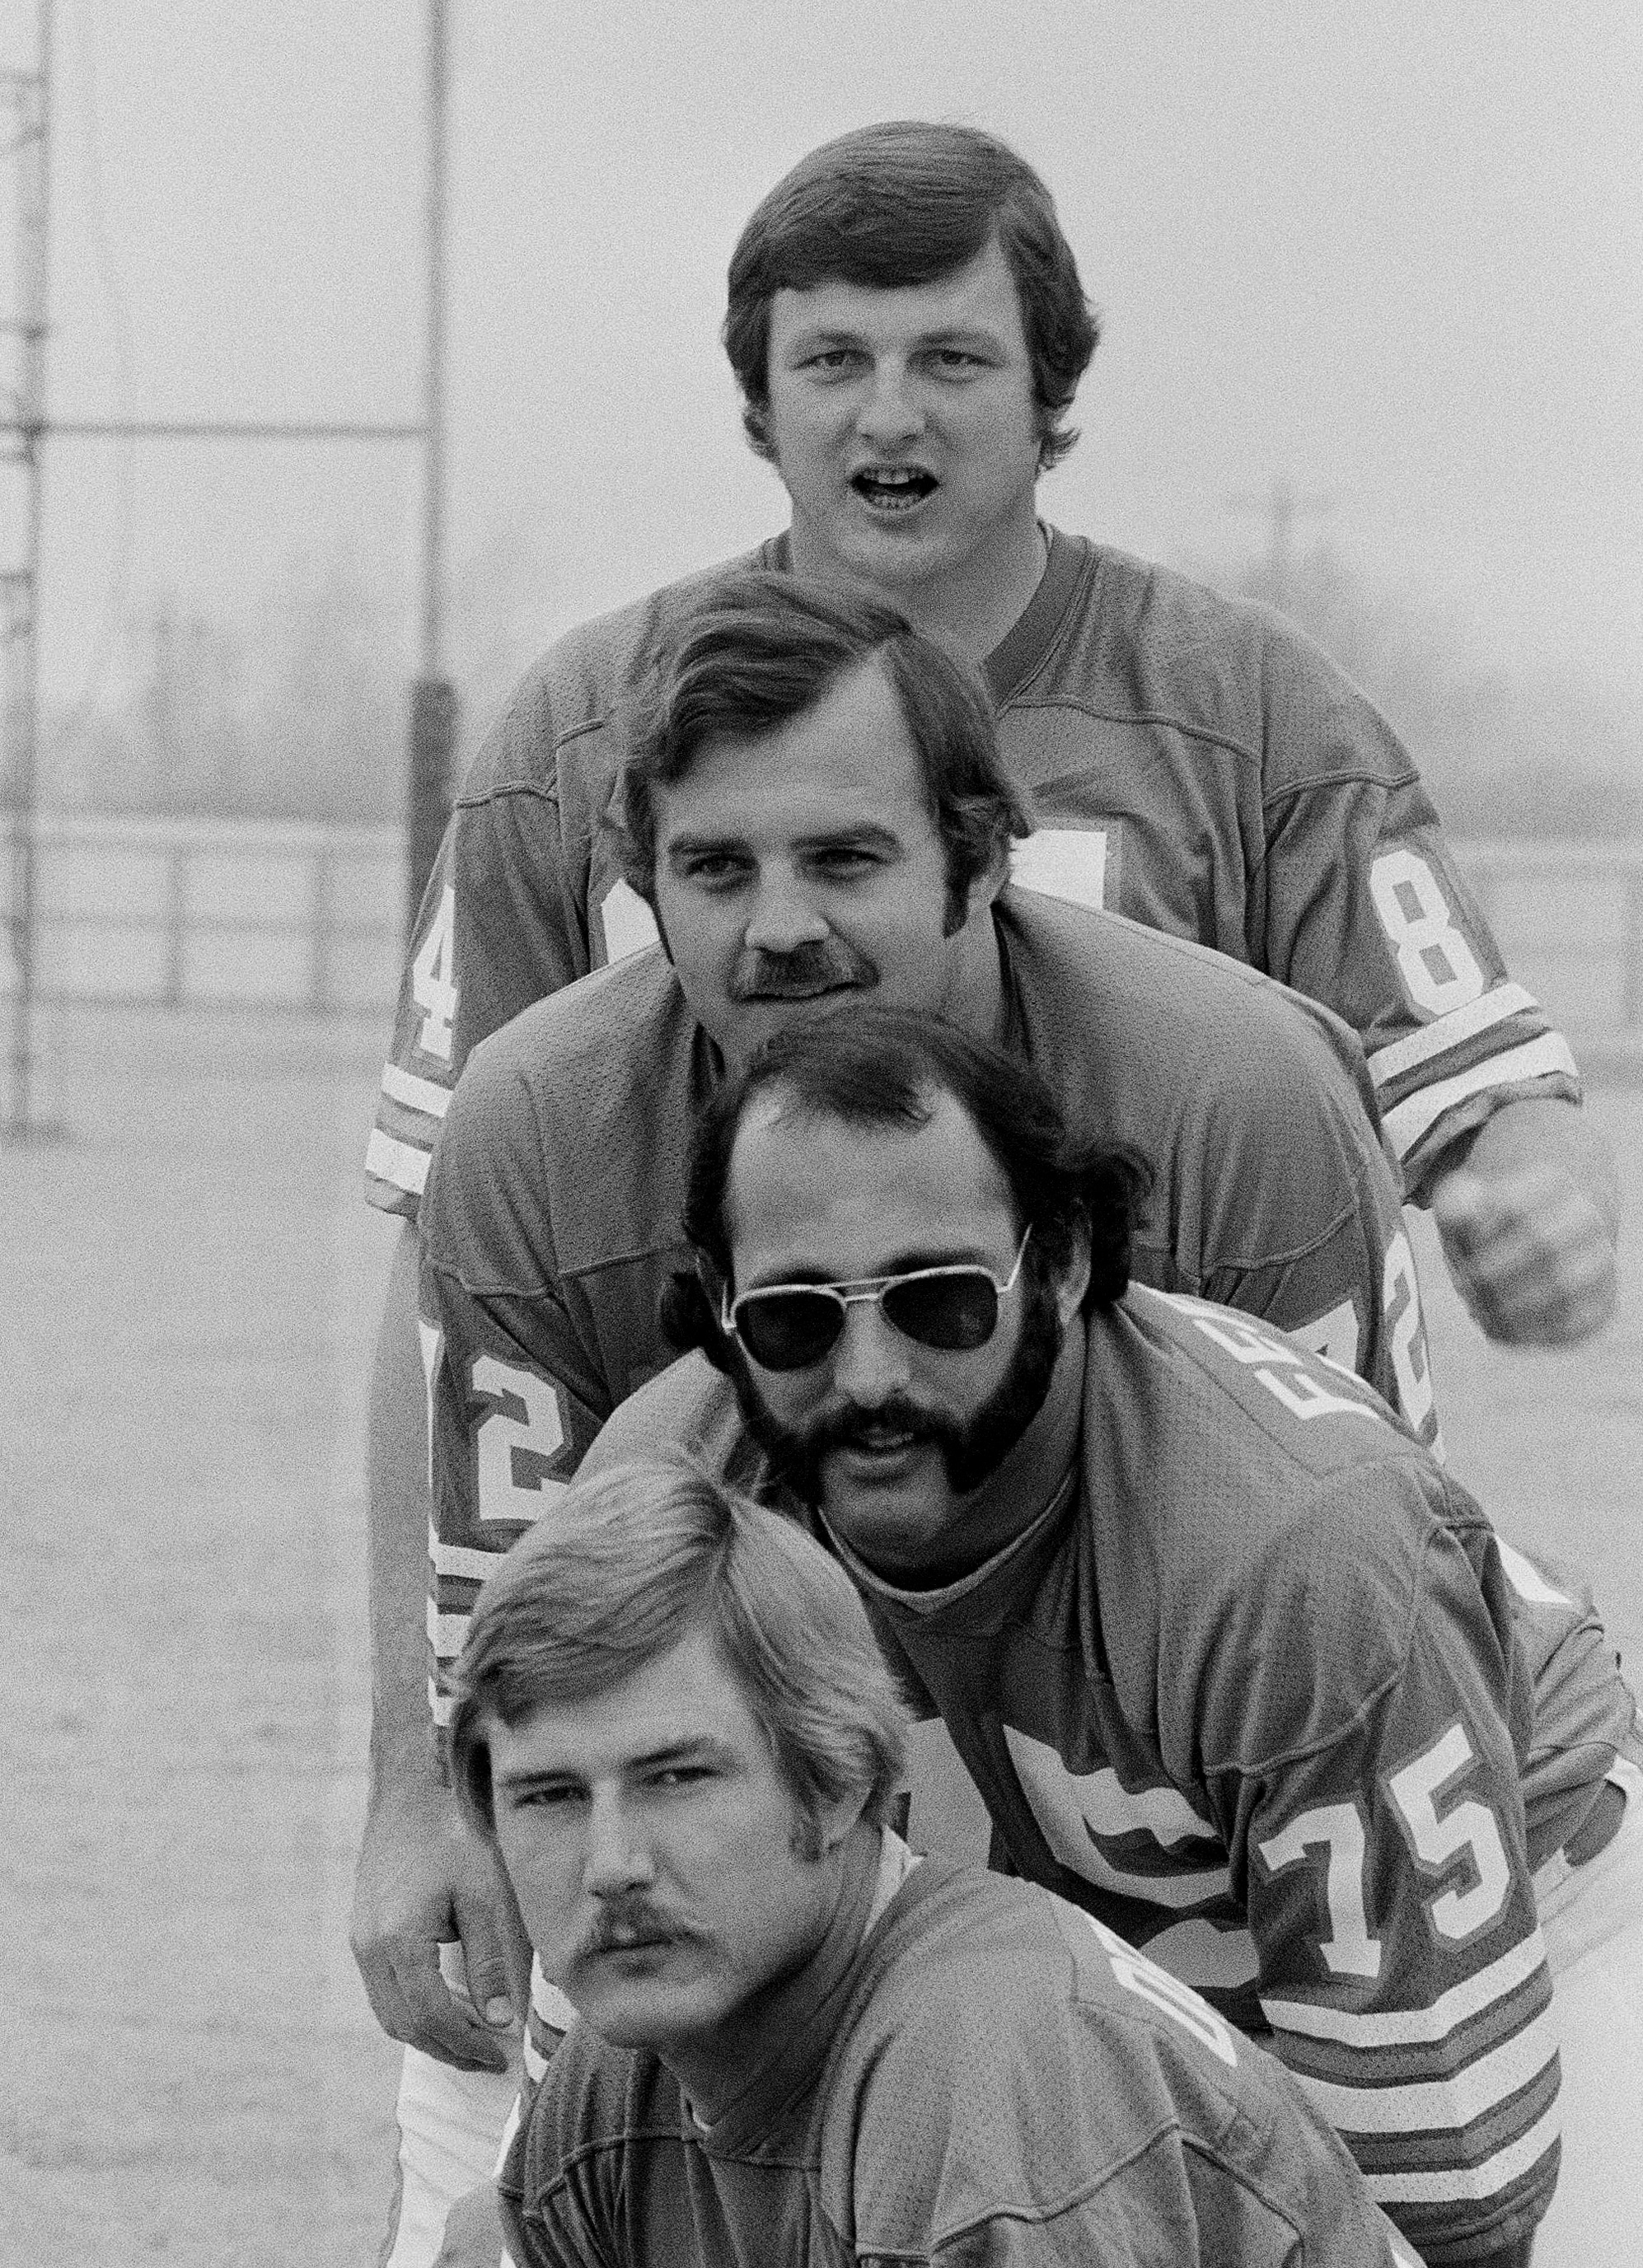 FILE - In this Jan. 7, 1974, file photo, Miami Dolphins defensive linemen, from top to bottom, Bill Stanfill, Bob Heinz, Manny Fernandez and Vern Den Herder pose in Houston during the Dolphins picture day for Super Bowl VIII. Former Georgia and Miami Dolp